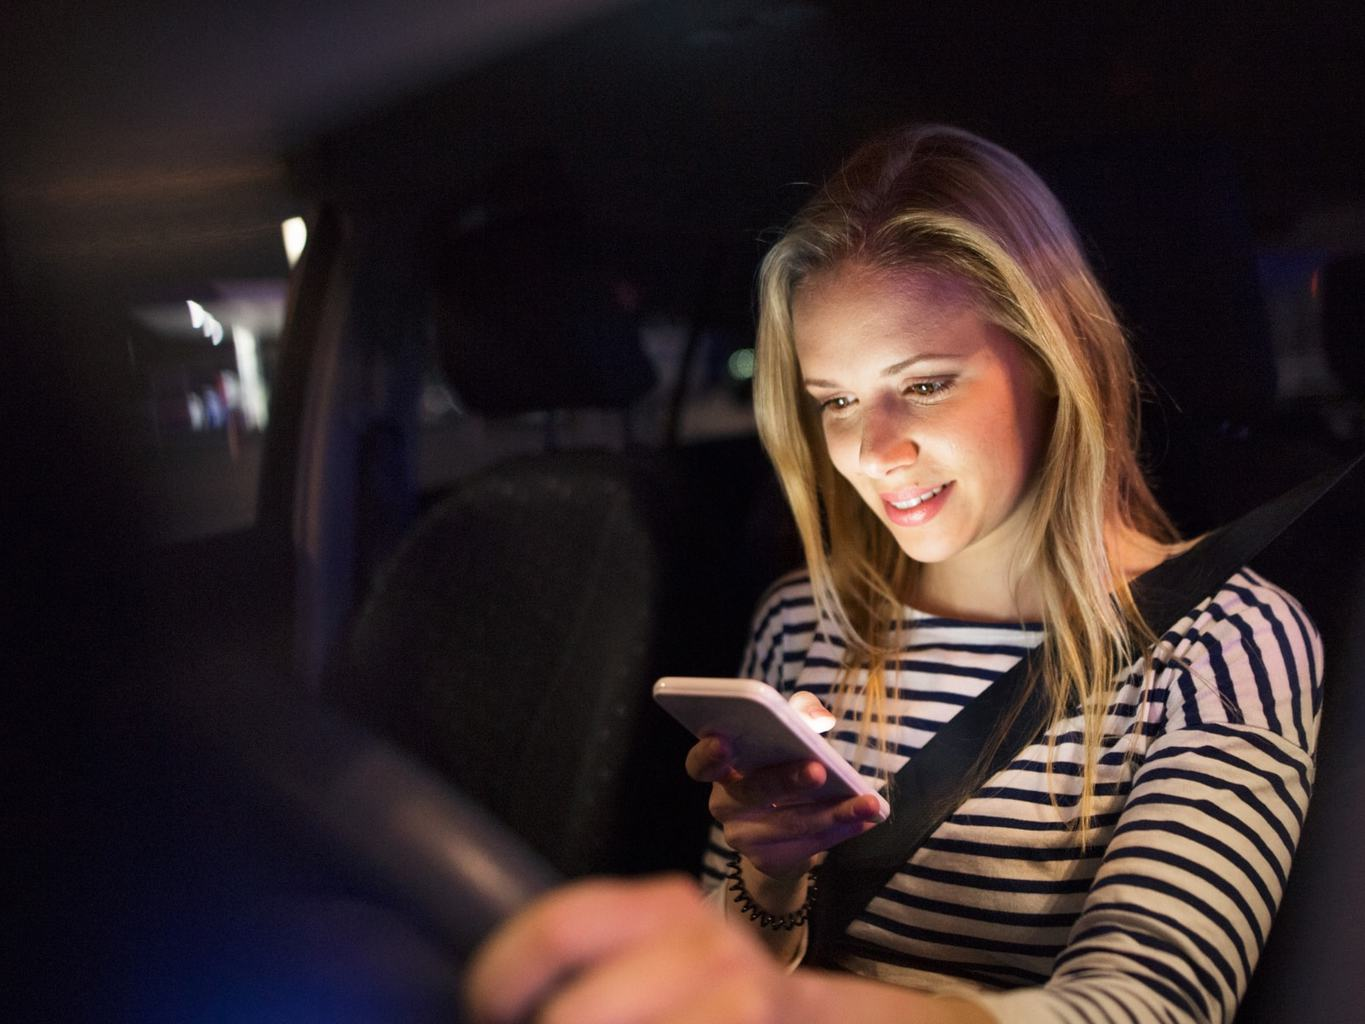 teen safety driving tips, texting while driving, Driving Tips For Teenage Drivers